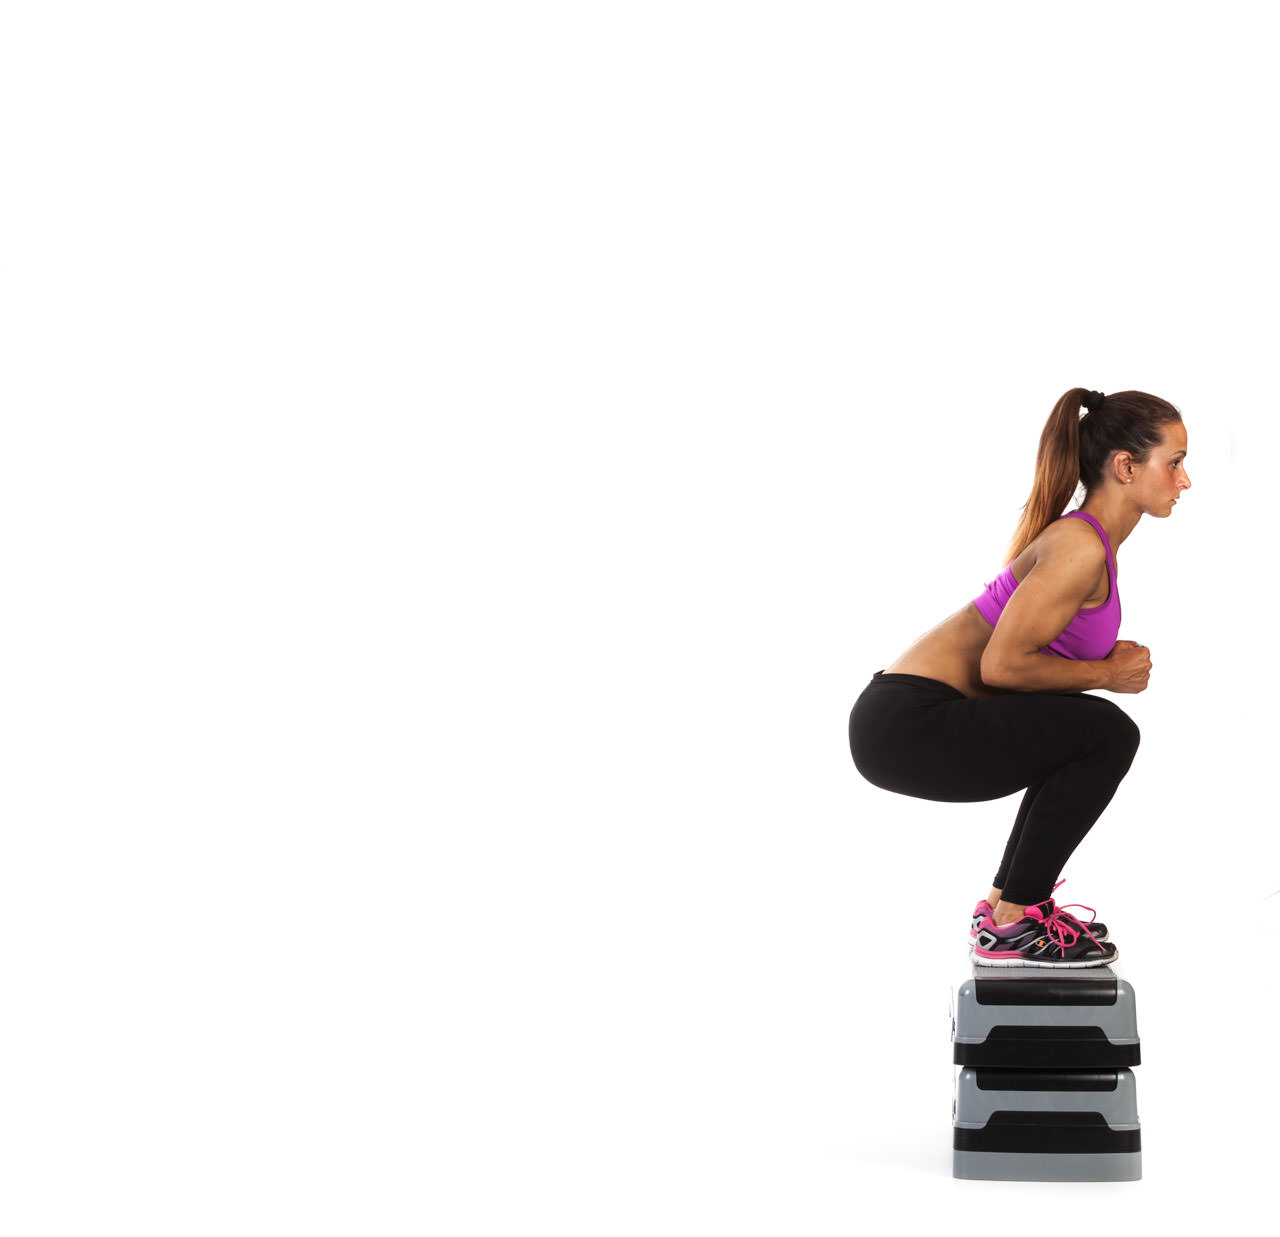 Burpee with Box Jump frame #4